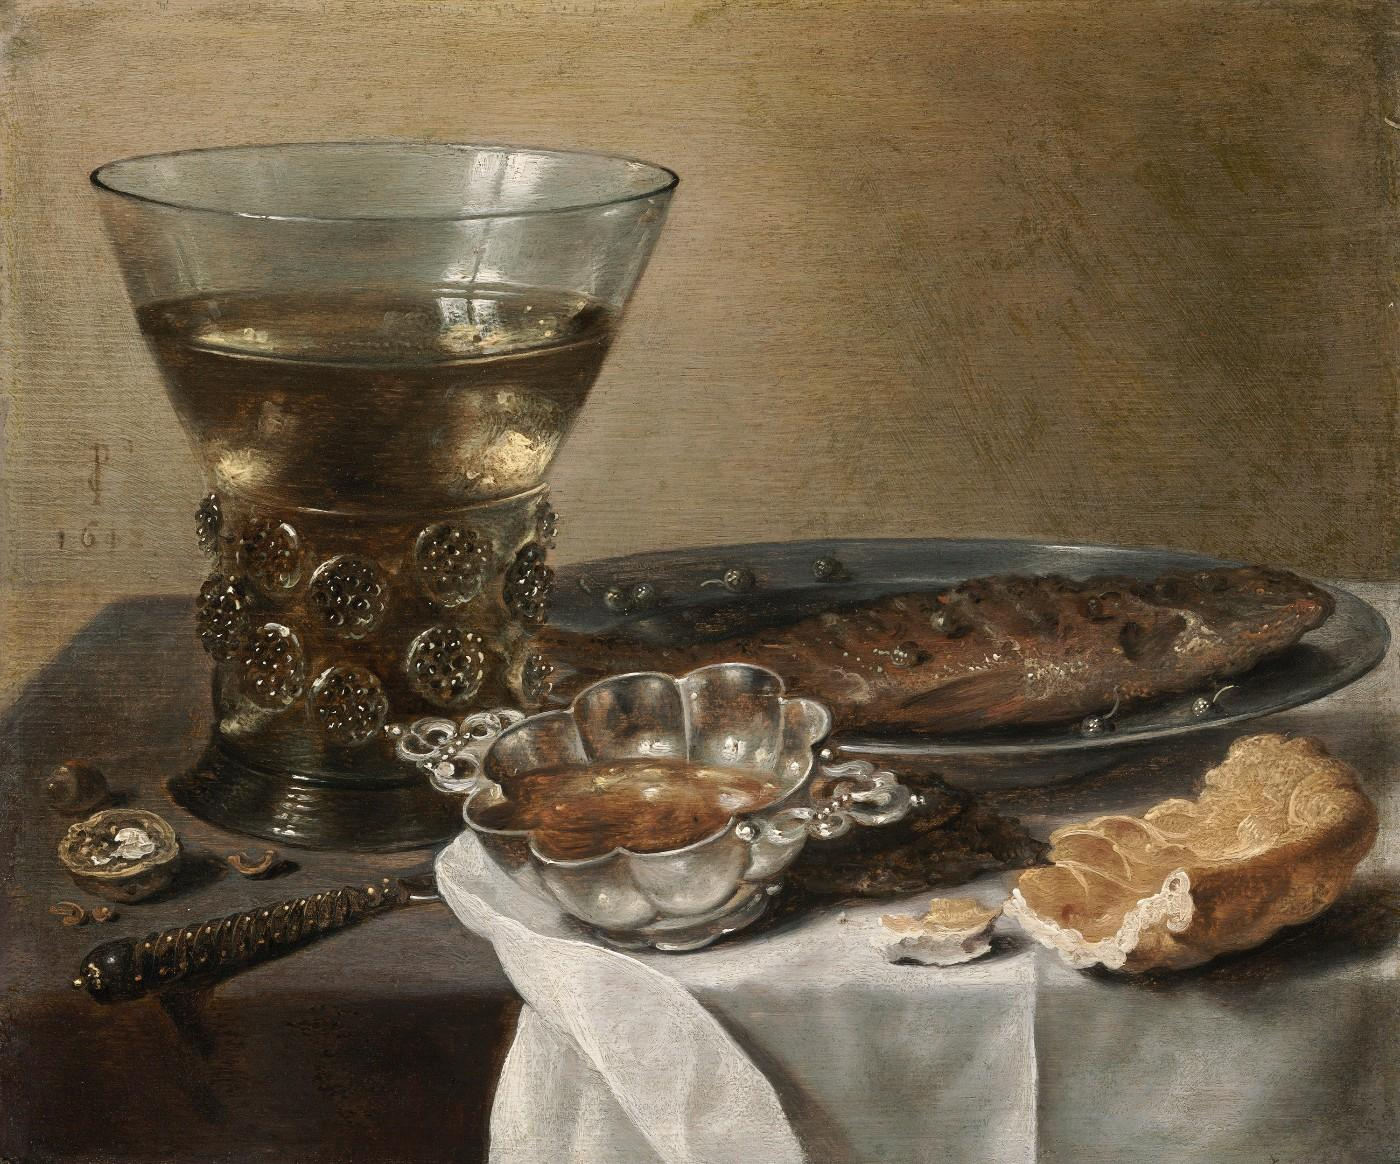 Pieter Claesz (Dutch, about 1597–1660), Still Life with Silver Brandy Bowl, Wine Glass, Herring, and Bread, 1642